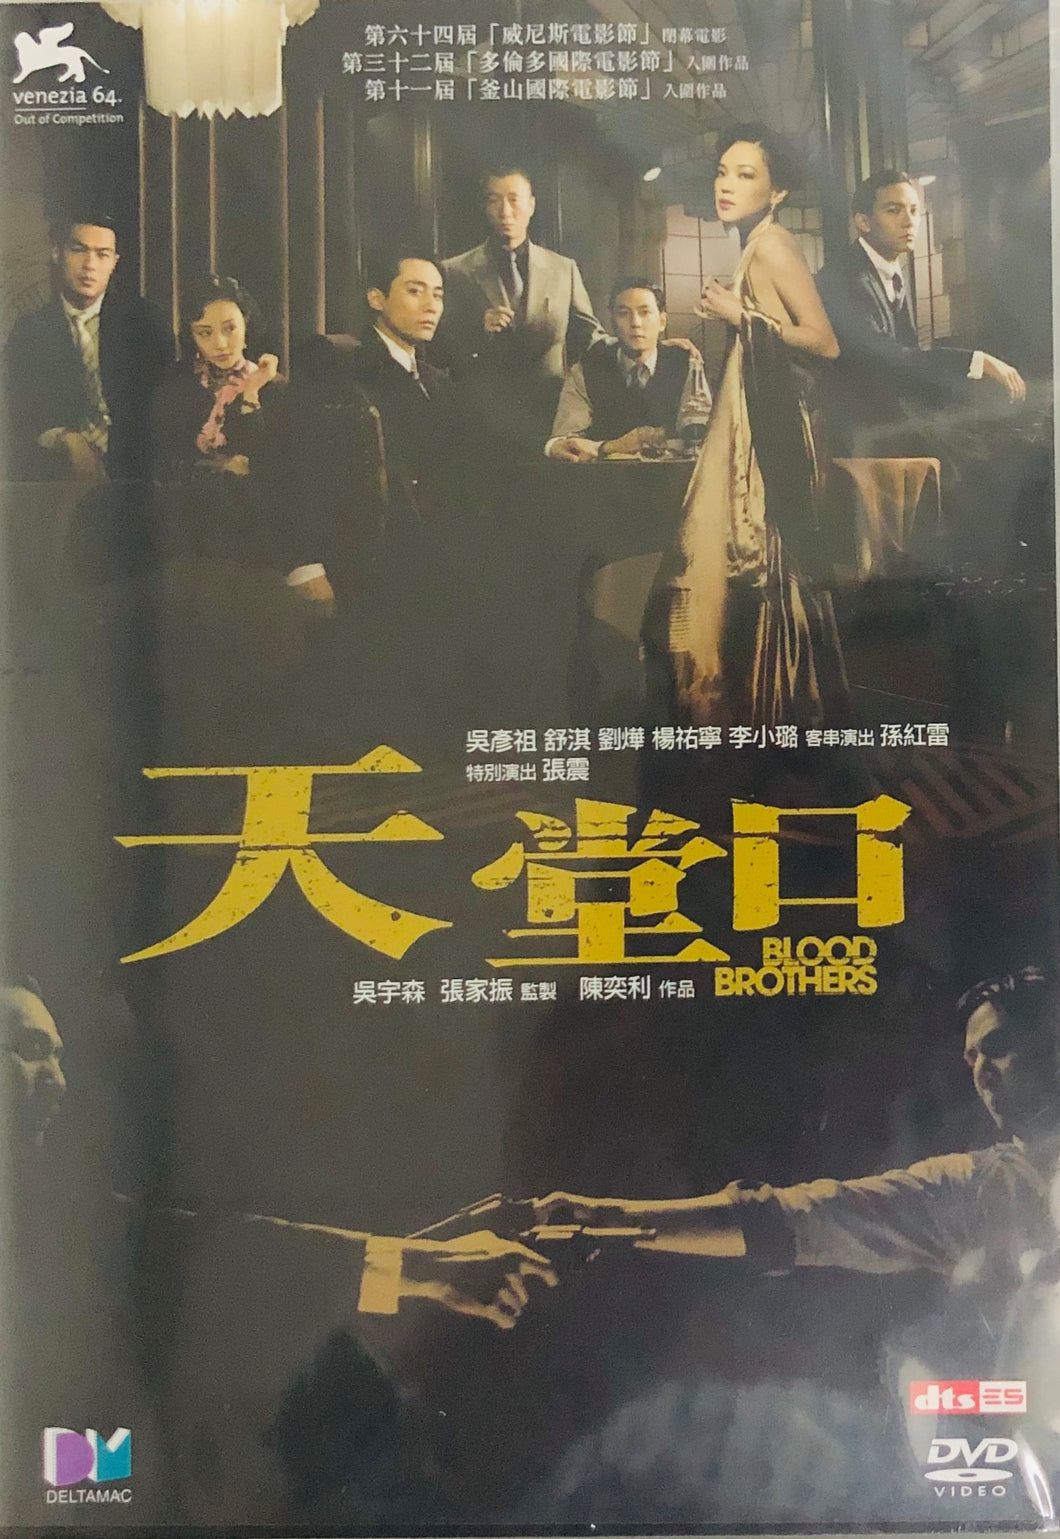 BLOOD BROTHERS 2007 (HONG KONG MOVIE) DVD ENGLISH SUBTITLES (REGION 3)